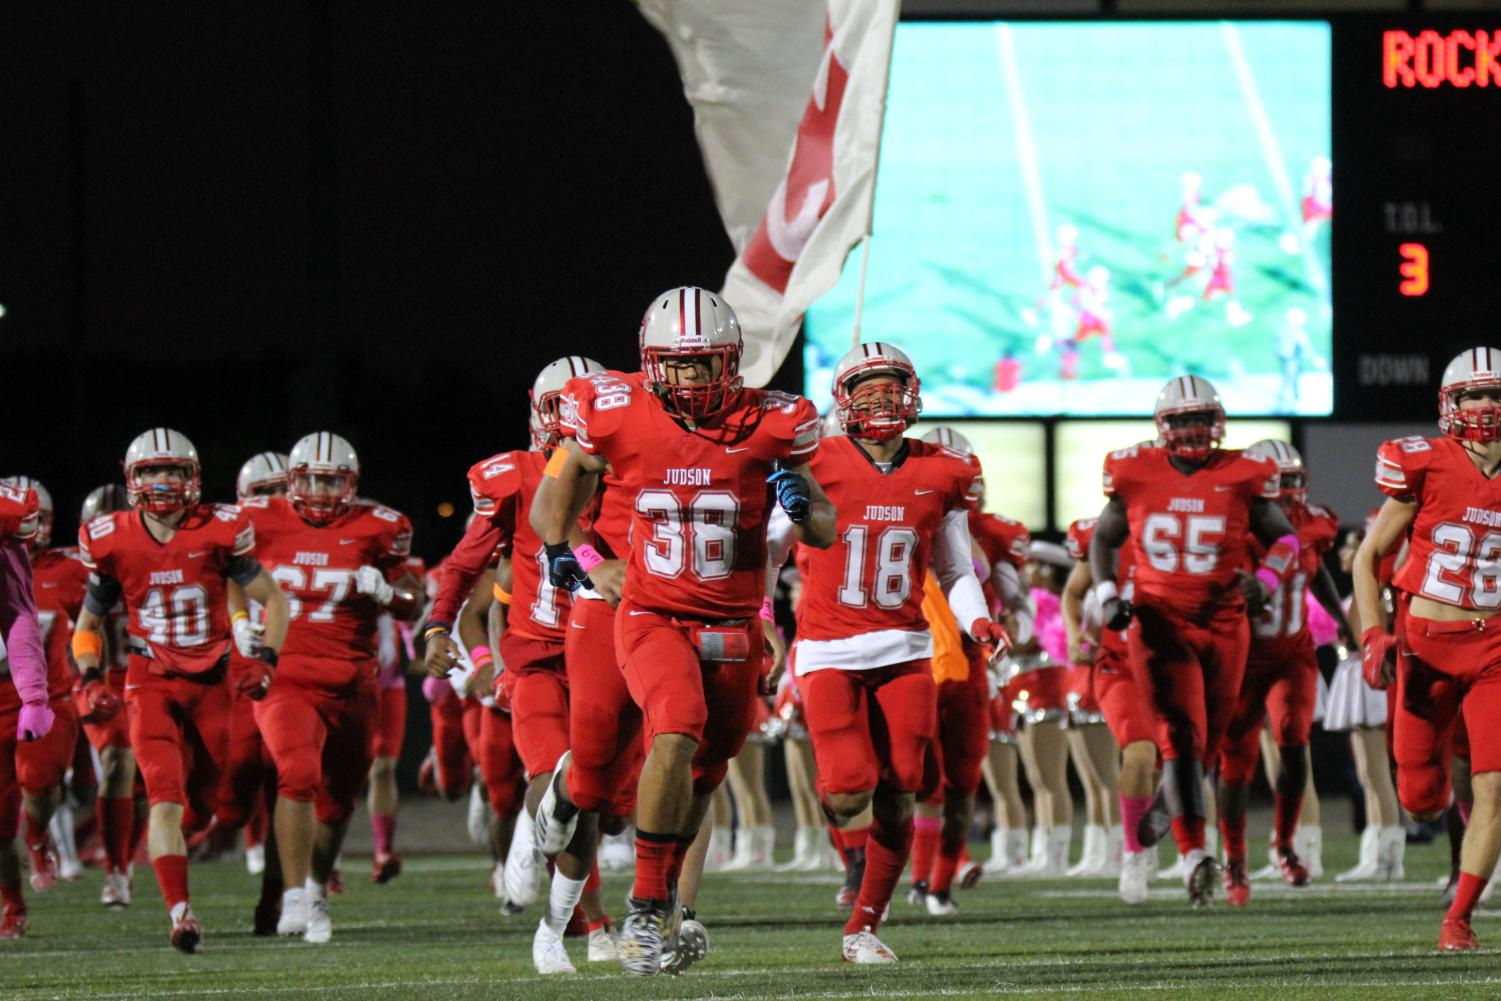 The Rockets run onto the field at D.W. Rutledge Stadium for their Pink Out game against Smithson Valley. The Rockets beat the Rangers 30-13. Clemens is the next highly anticipated game in the district.